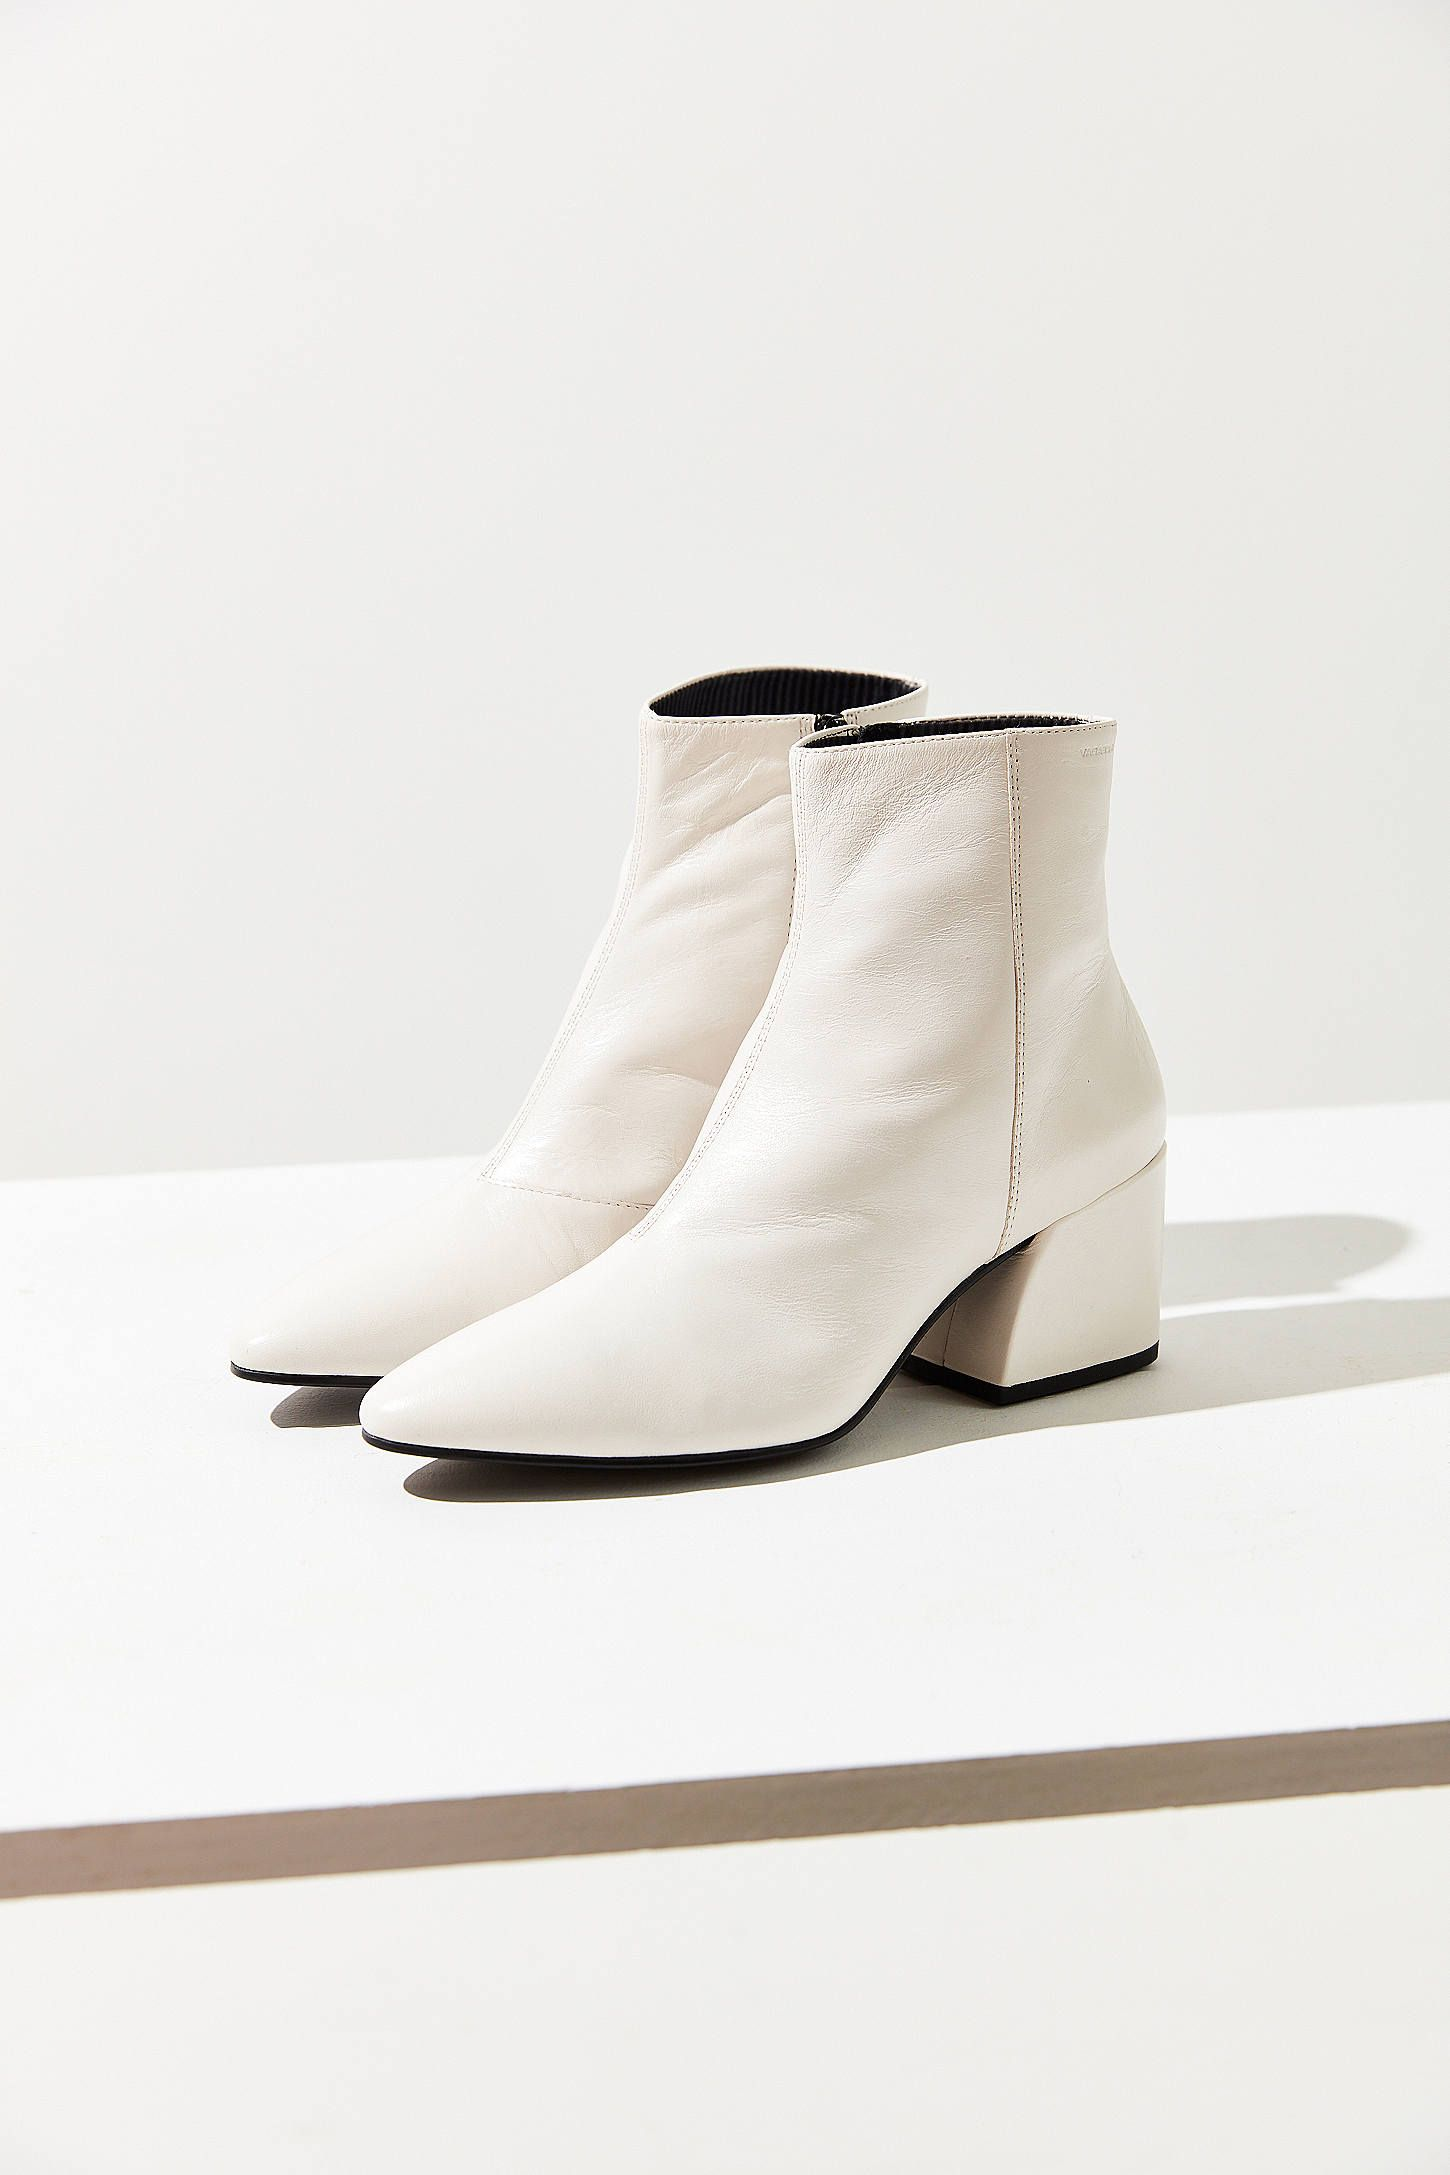 368f1f7955 Shop Vagabond Olivia Leather Boot at Urban Outfitters today. We carry all  the latest styles